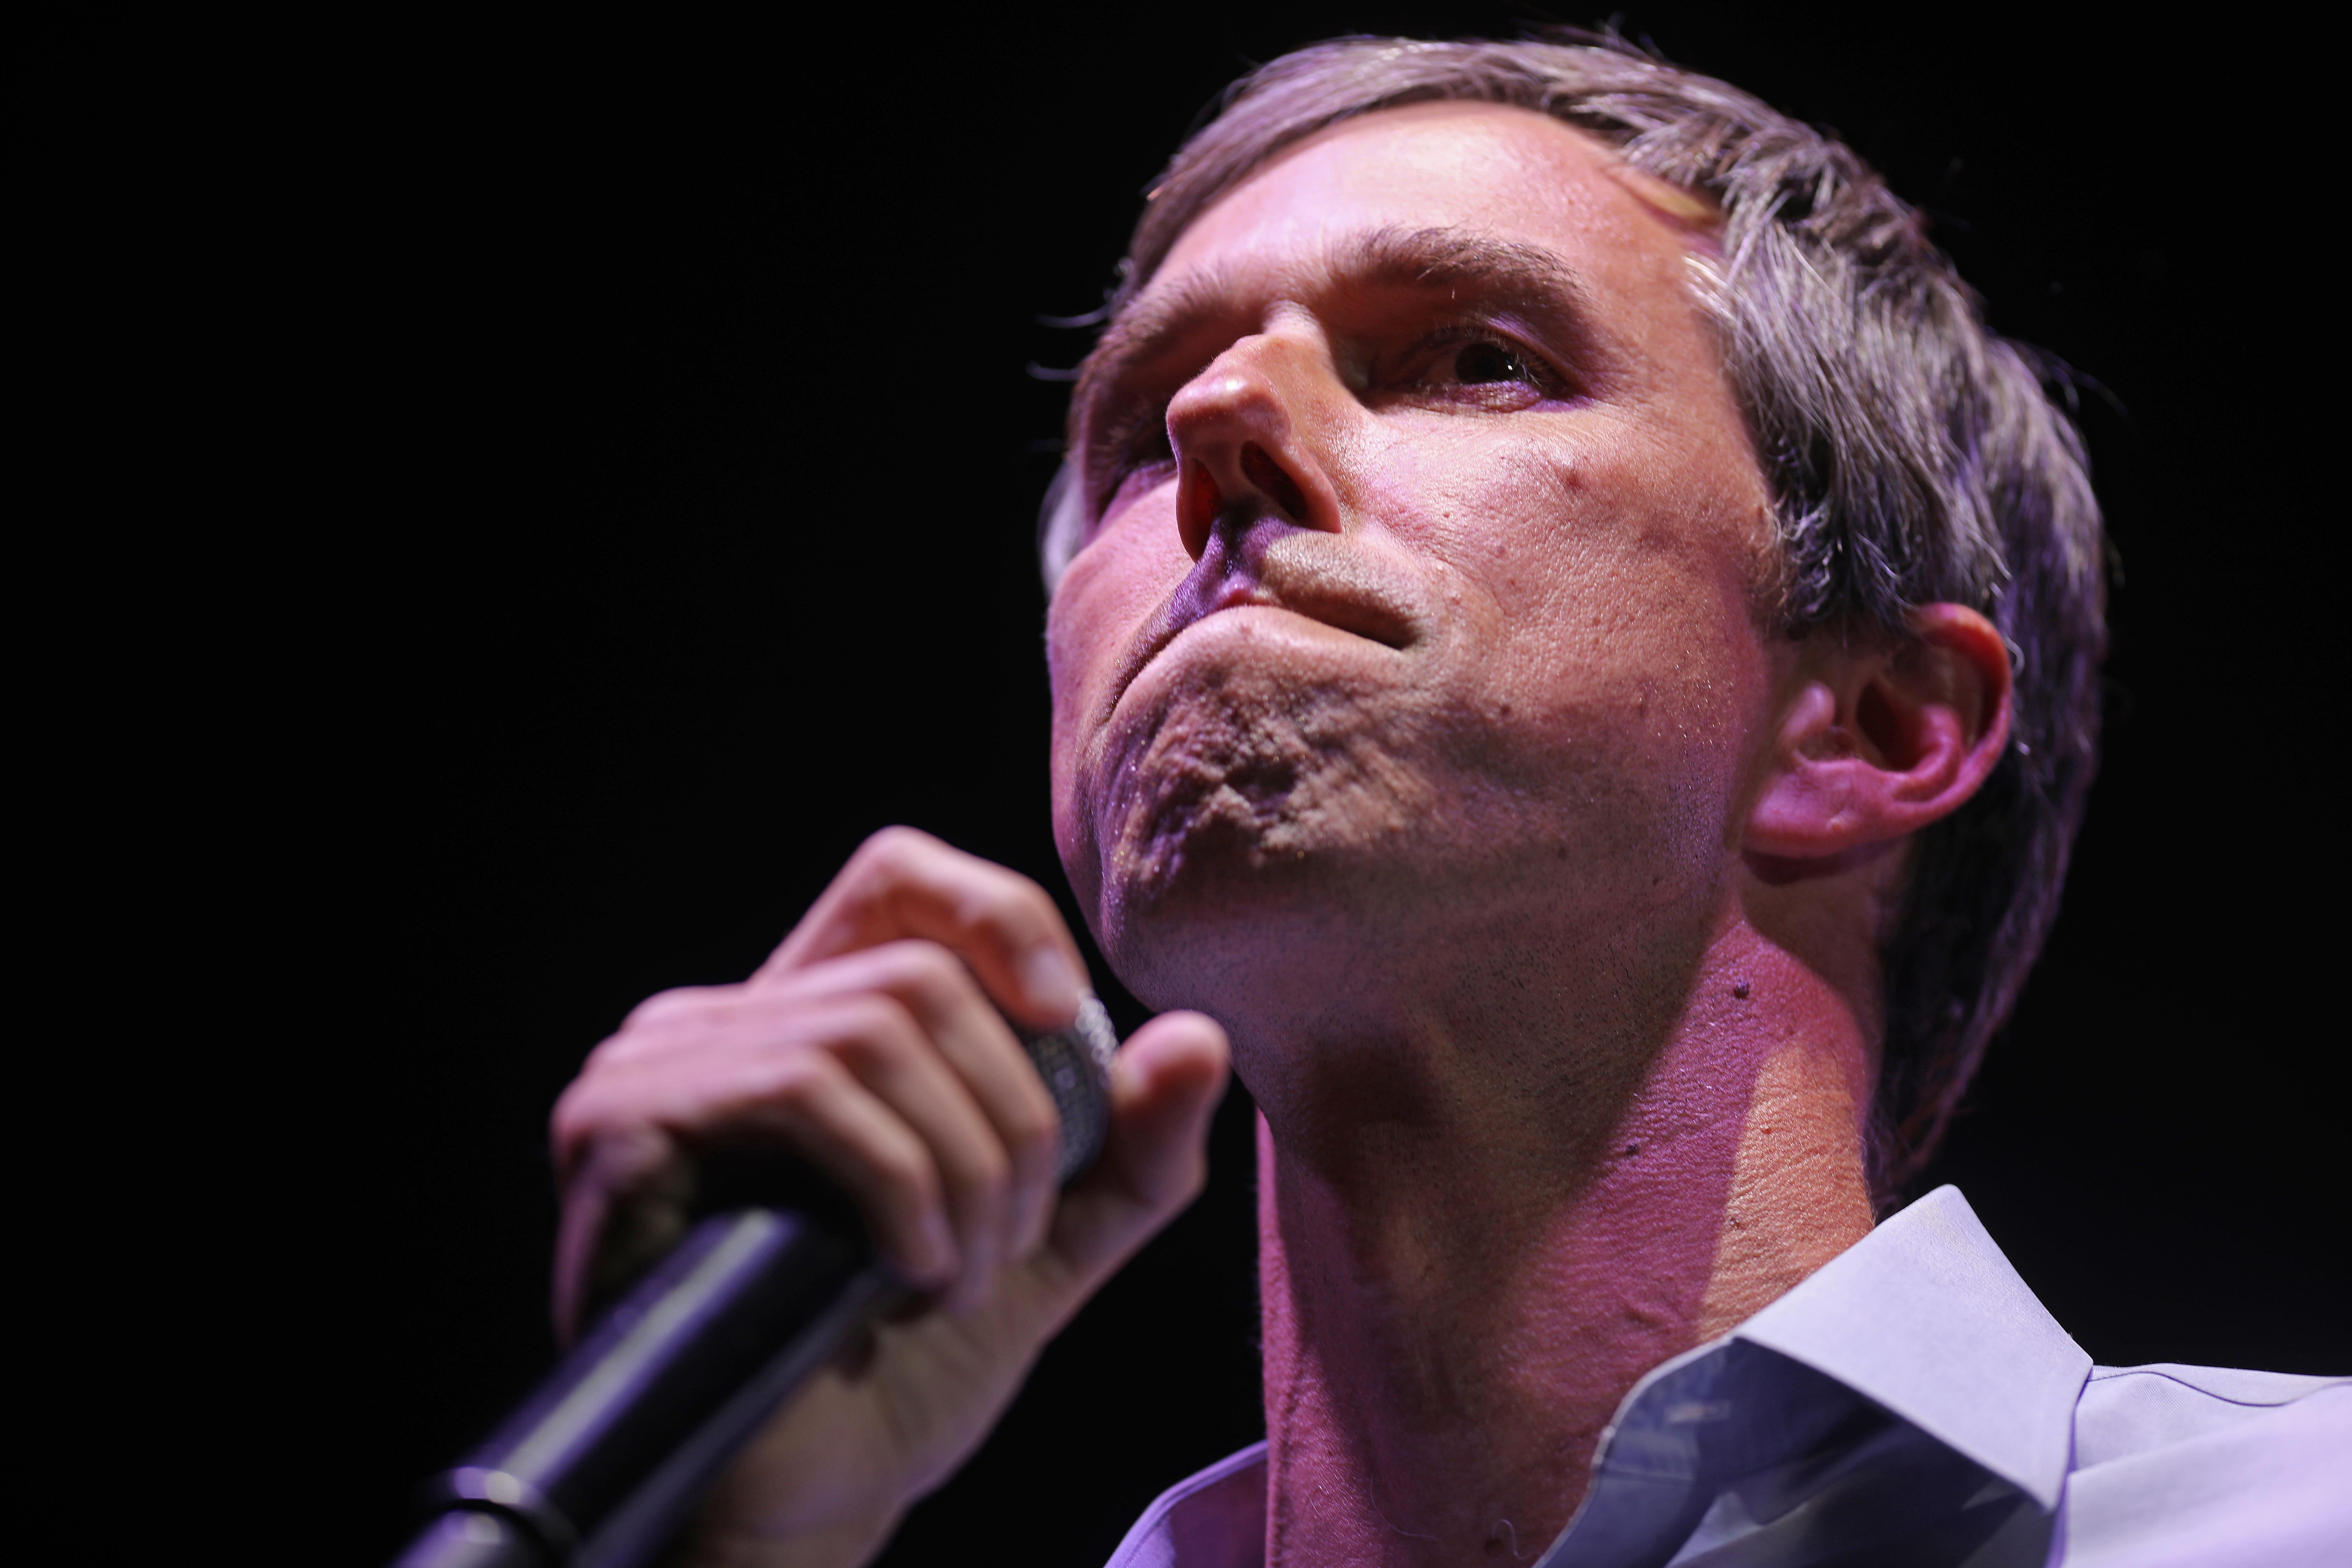 U.S. Senate candidate Rep. Beto O'Rourke (D-TX) concedes the race while addressing a 'thank you' party on Election Day at Southwest University Park November 06, 2018 in El Paso, Texas. O'Rourke lost to incumbent Sen. Ted Cruz (R-TX).